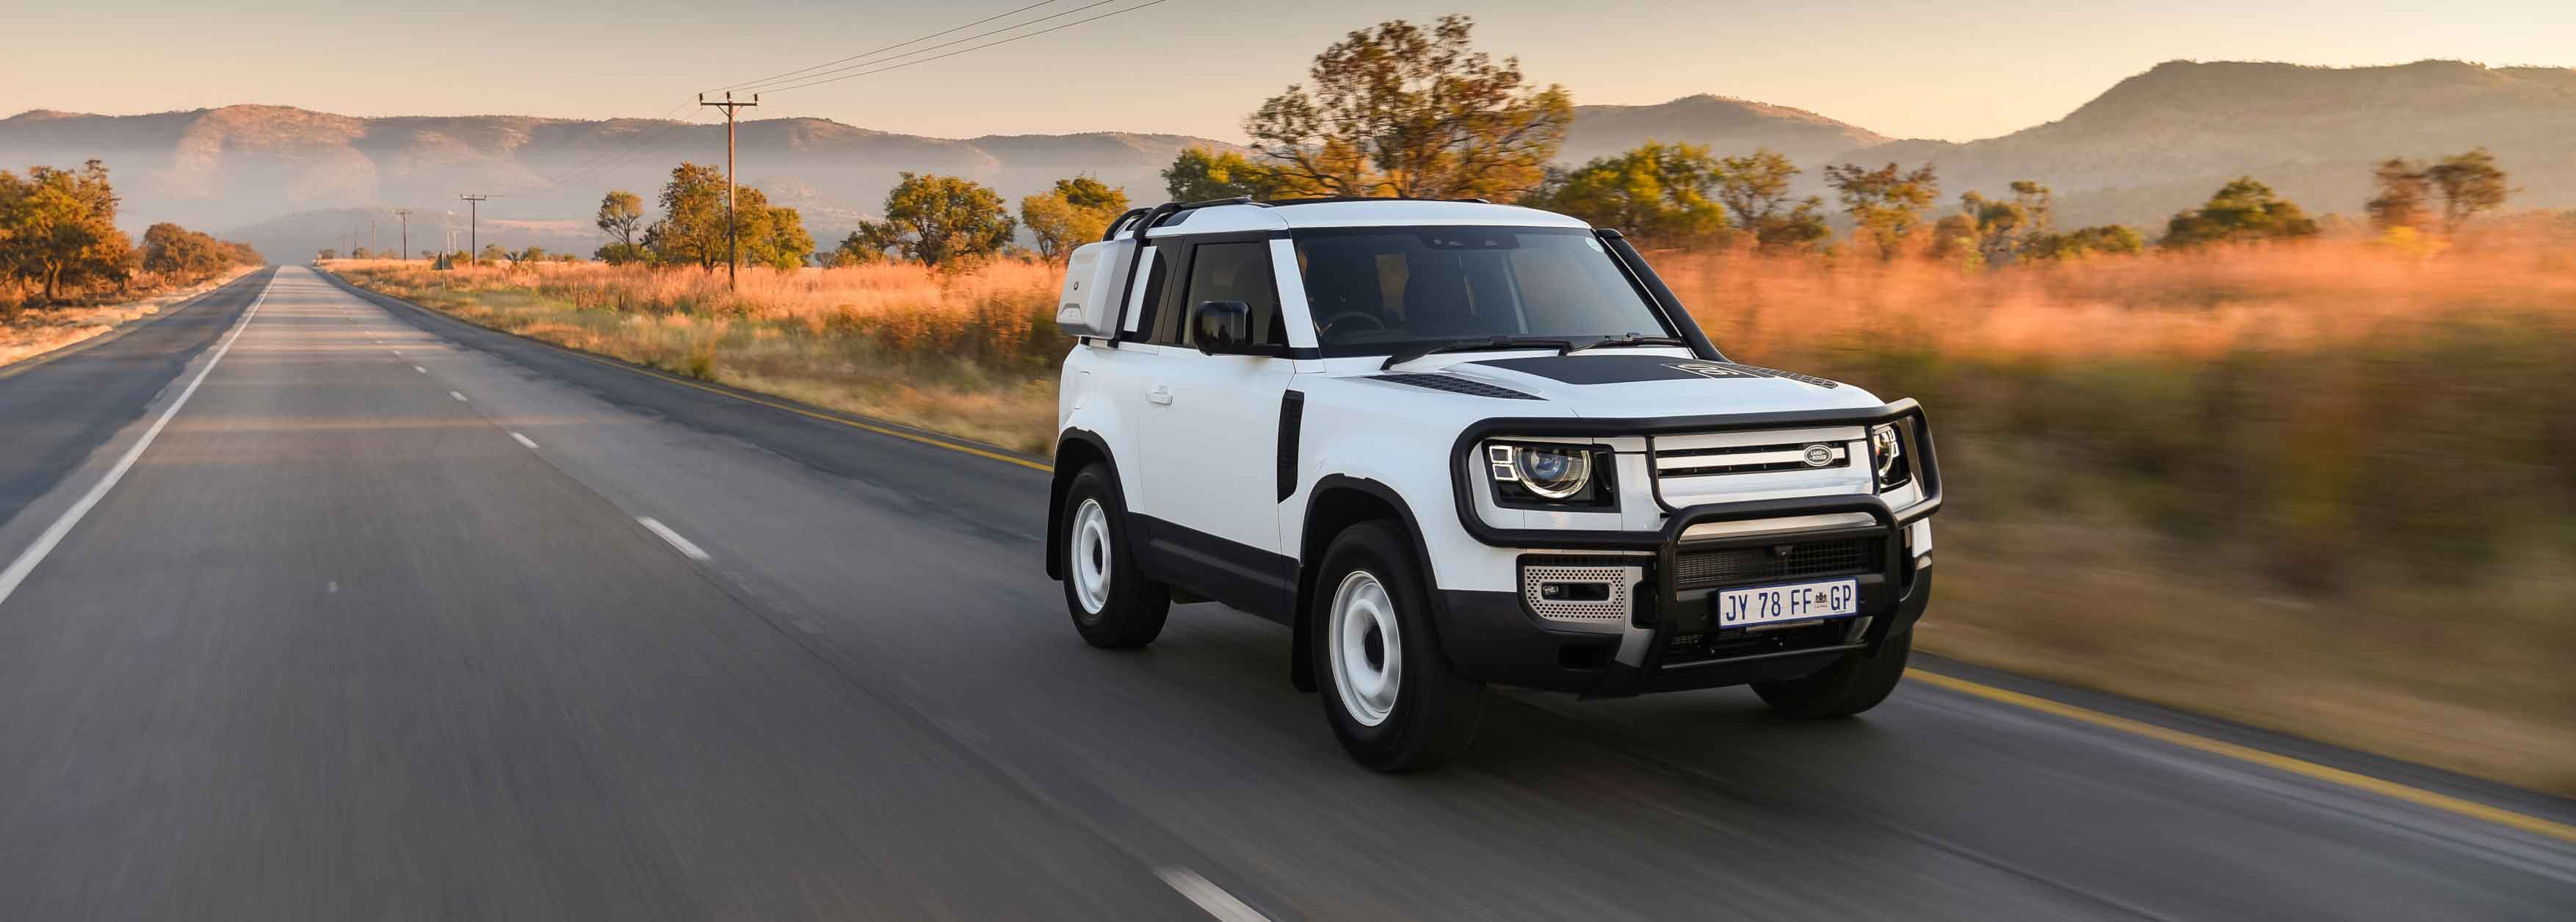 Land Rover Defender 90 ready for Africa